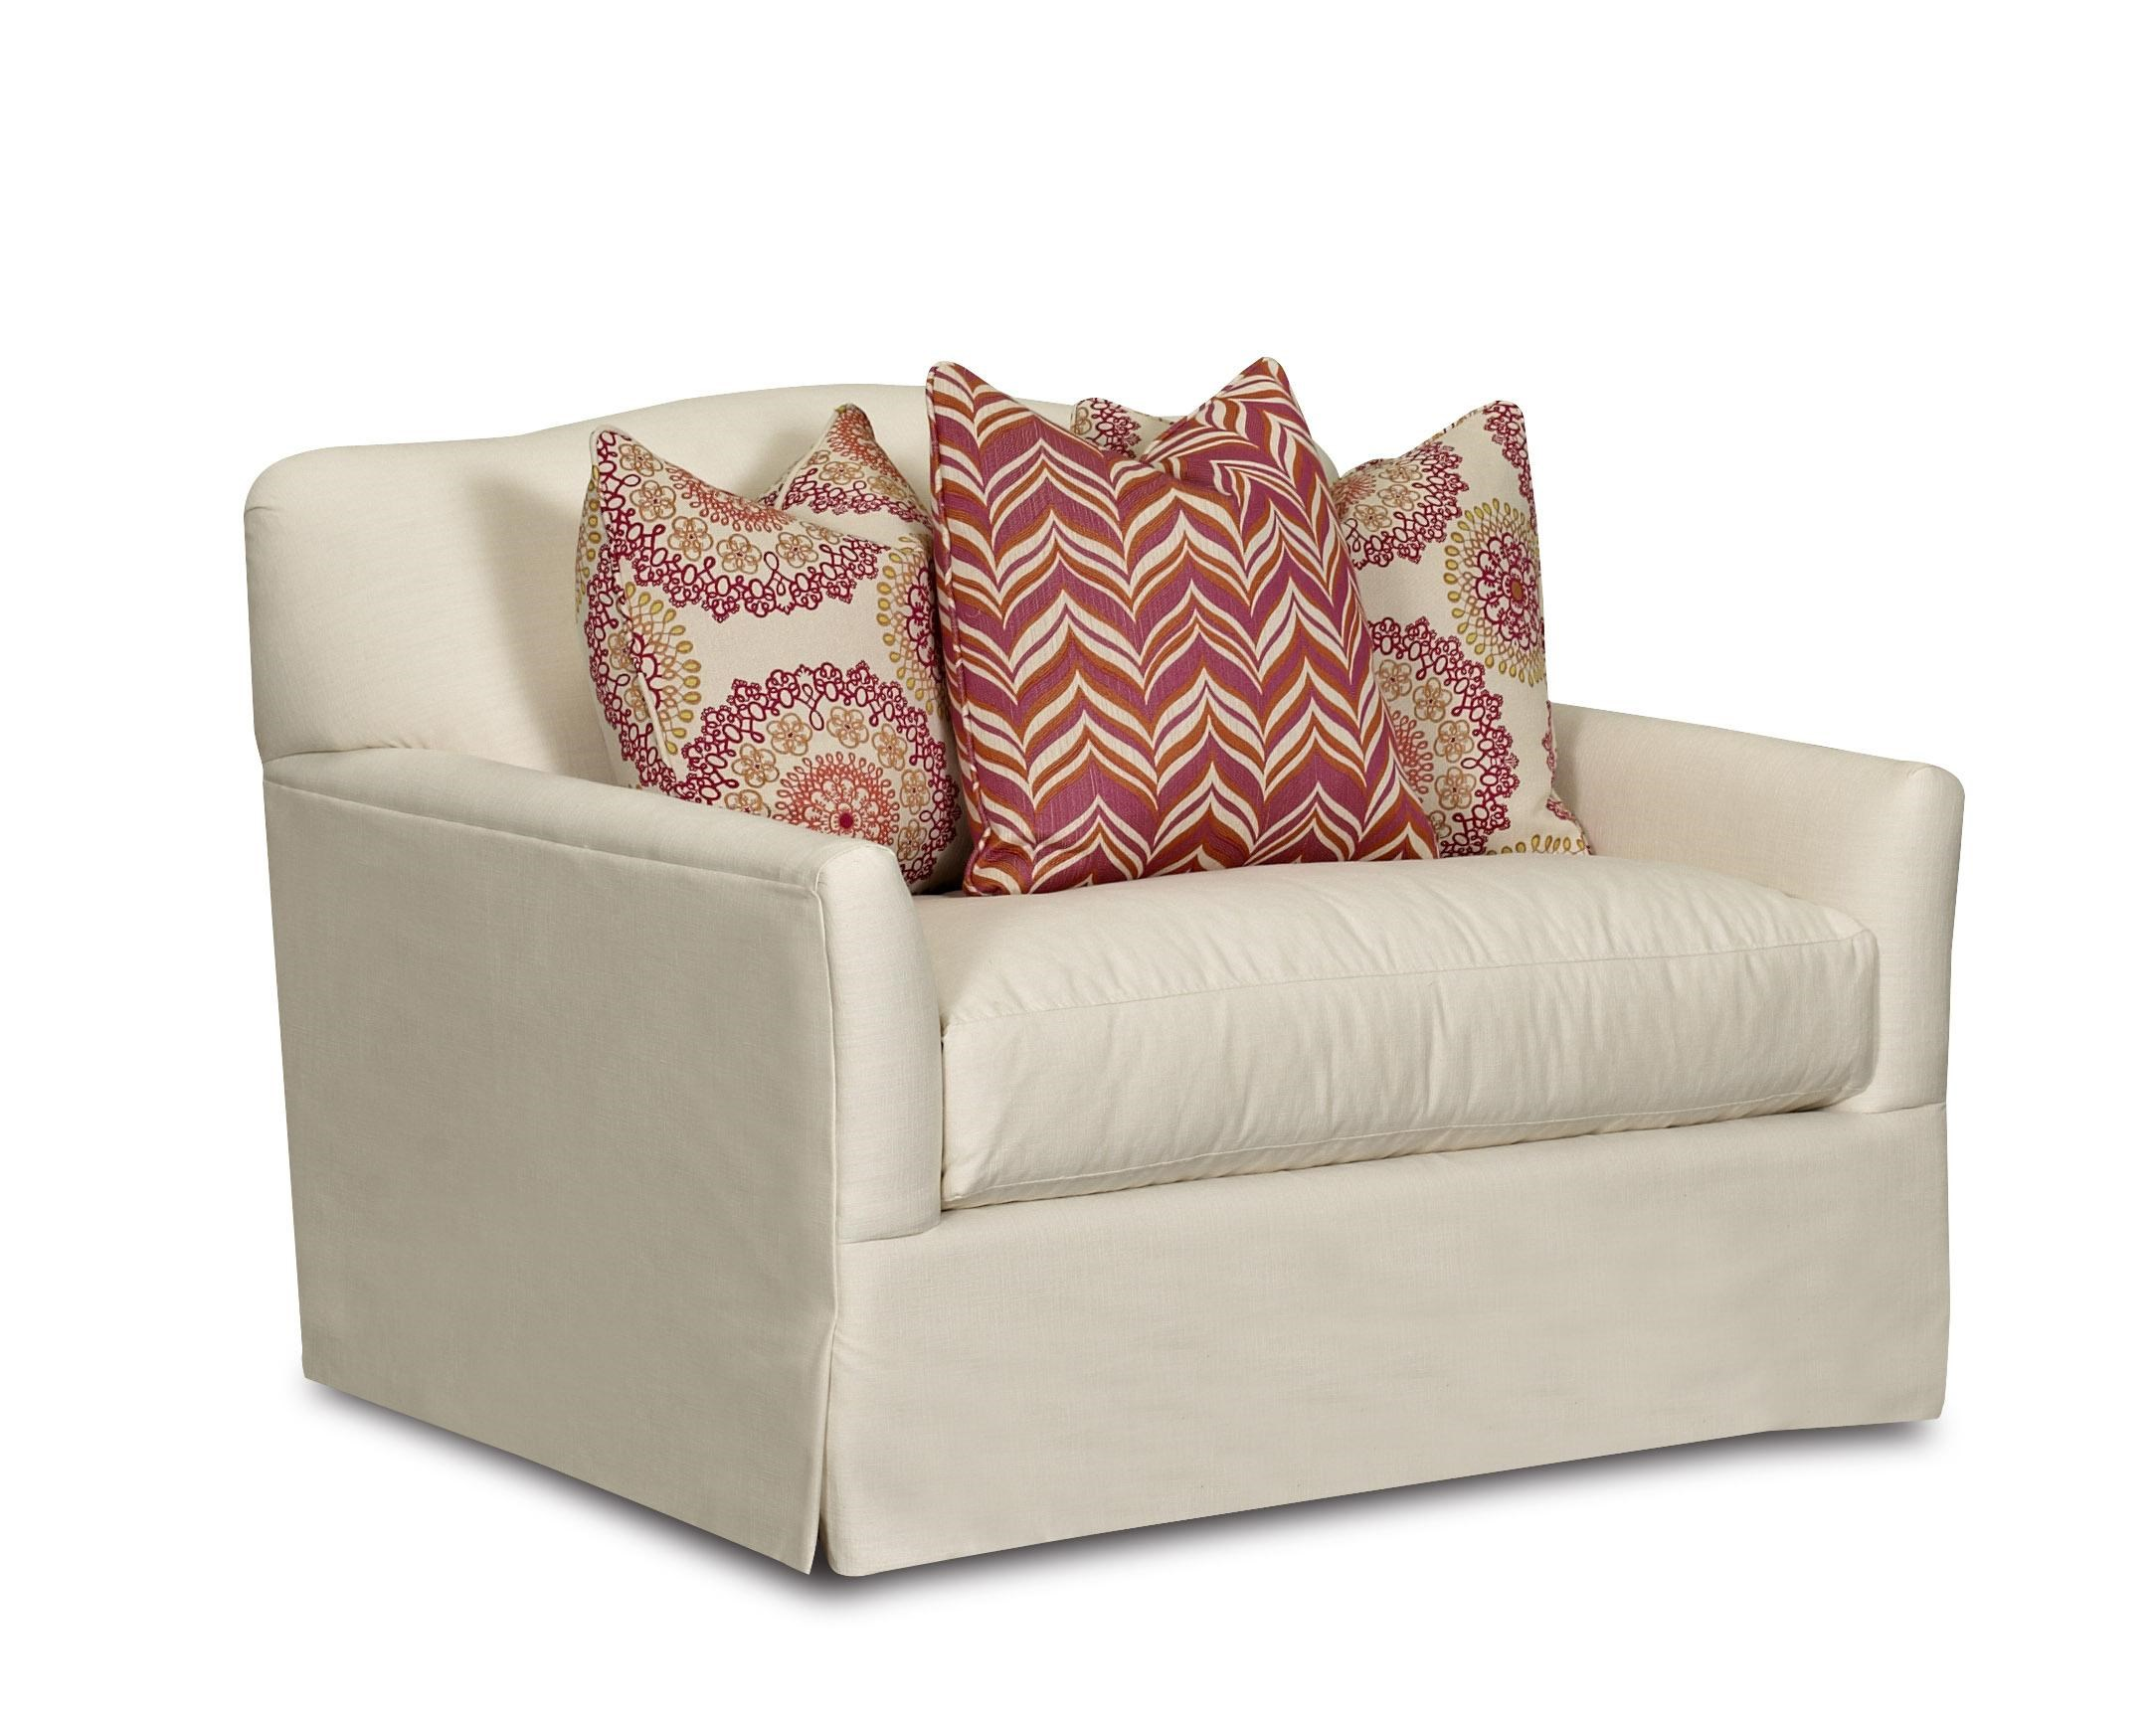 Klaussner Lindsey Transitional Chair With Bench Seat Cushion, Camel Back  And Waterfall Skirt | Novello Home Furnishings | Upholstered Chairs